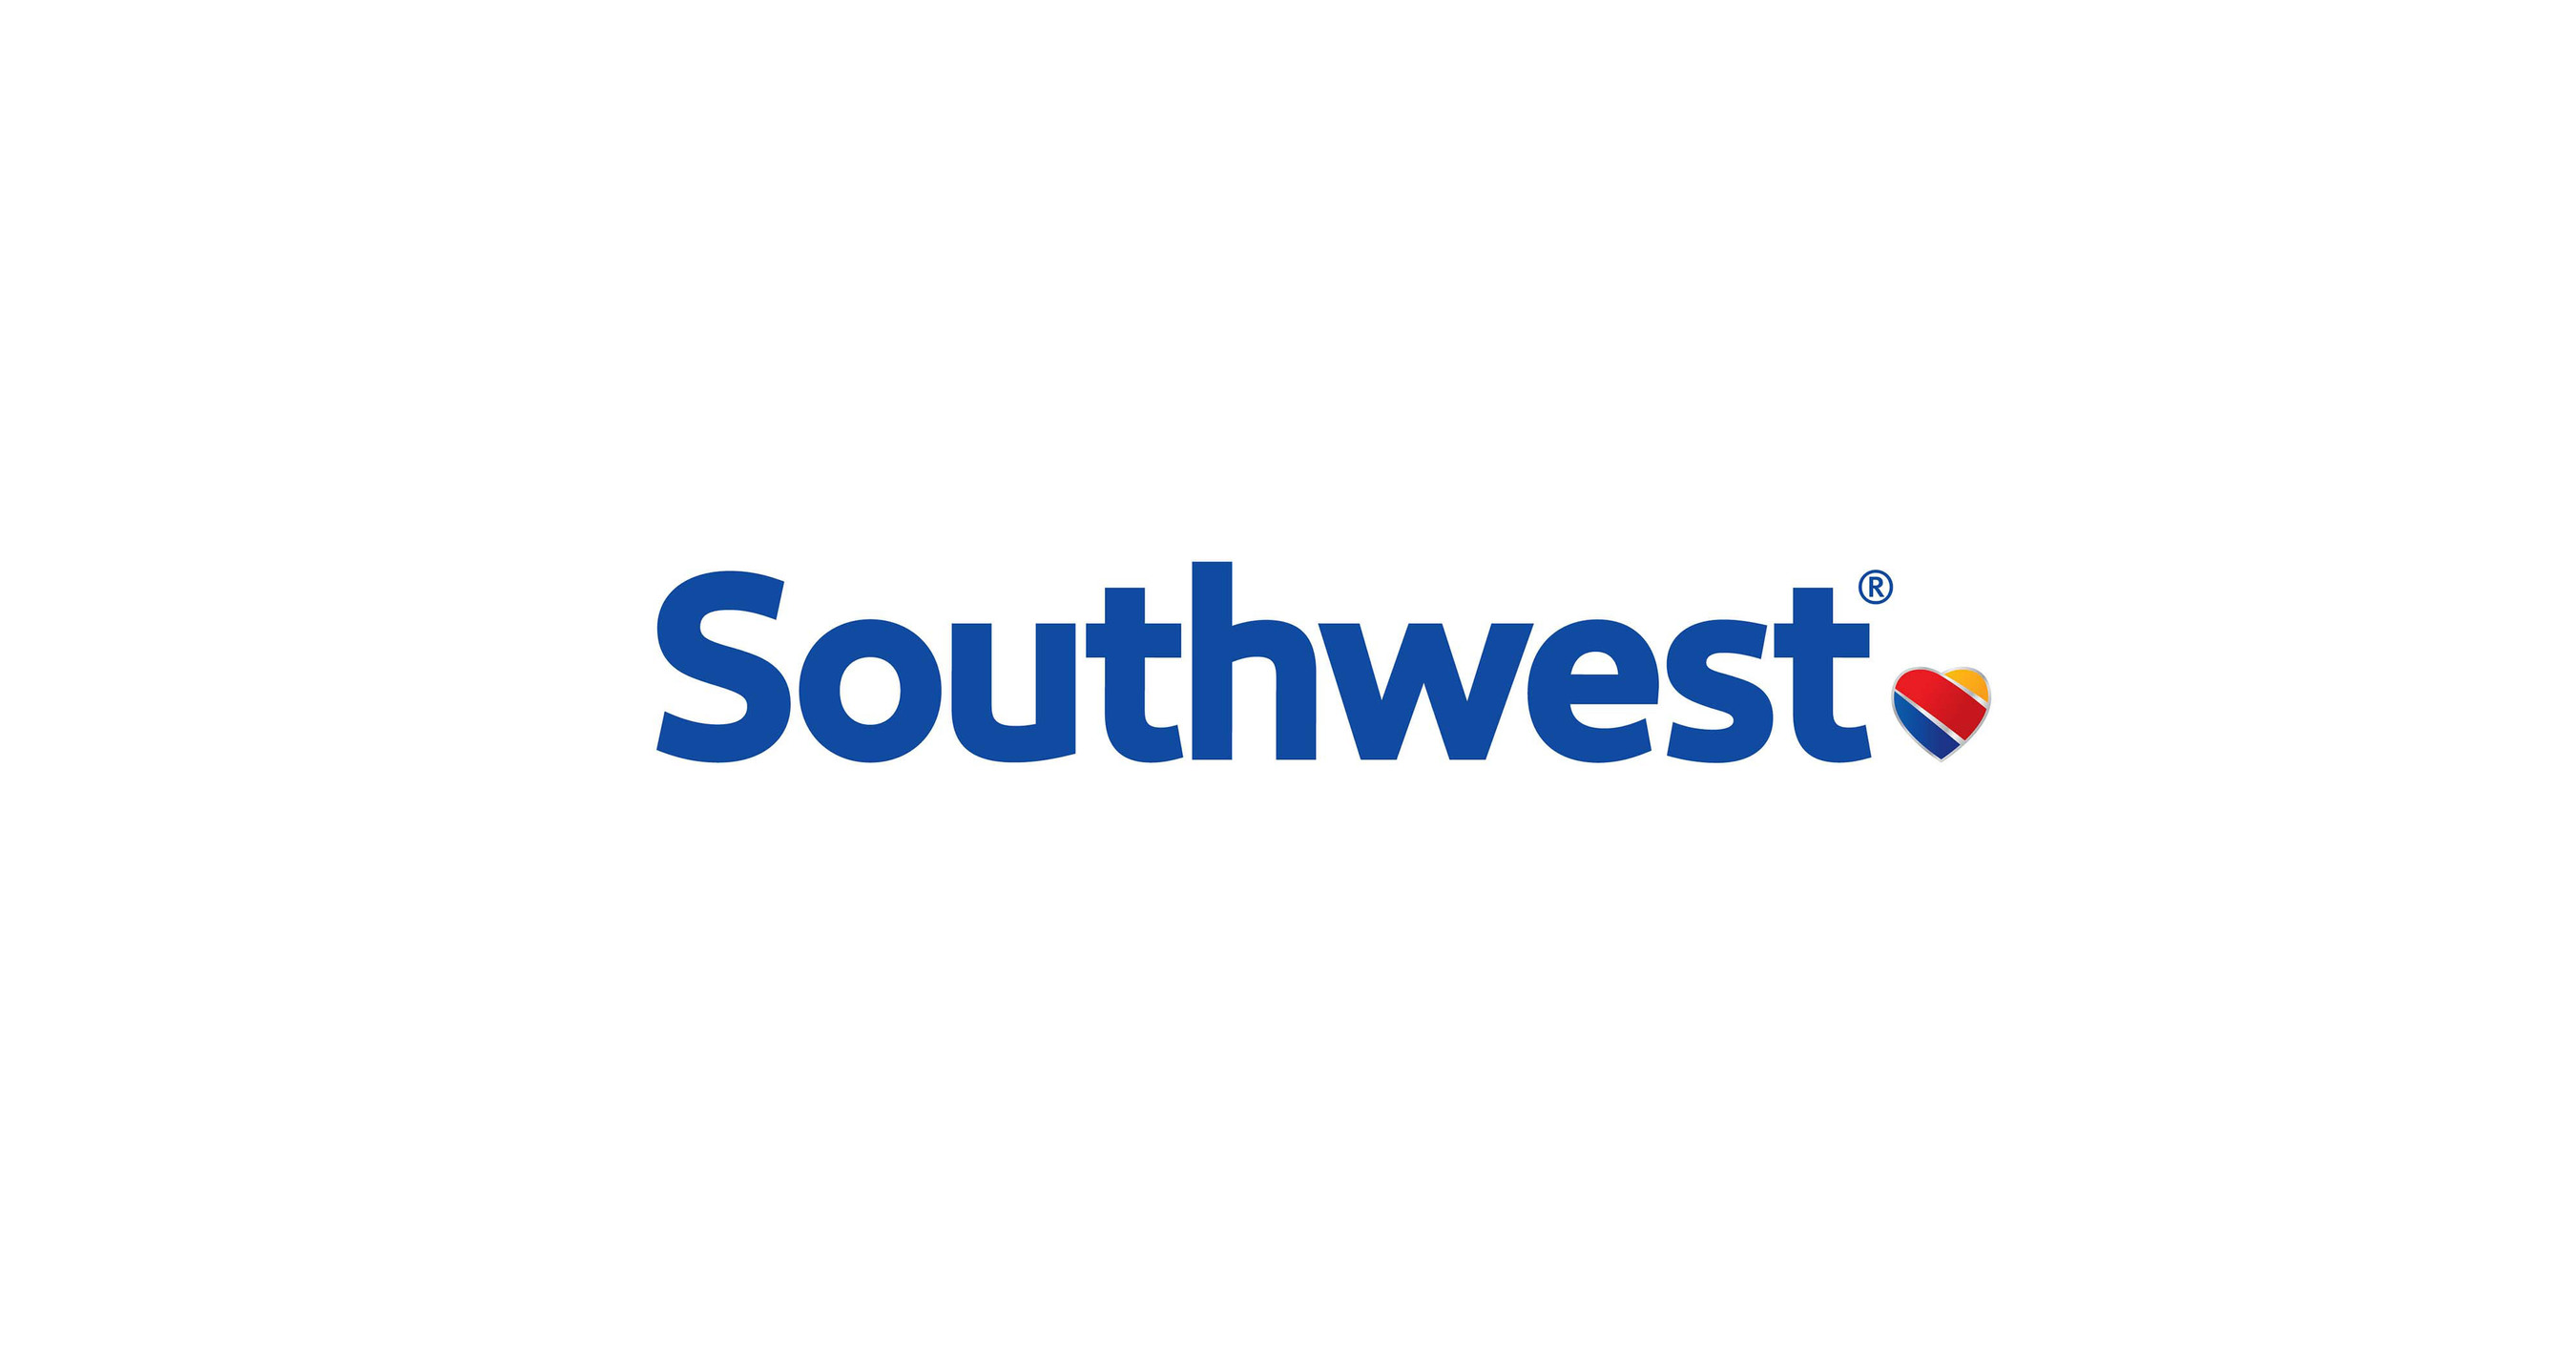 Southwest airlines honors its new orleans service with state southwest airlines honors its new orleans service with state themed tribute unveiling louisiana buycottarizona